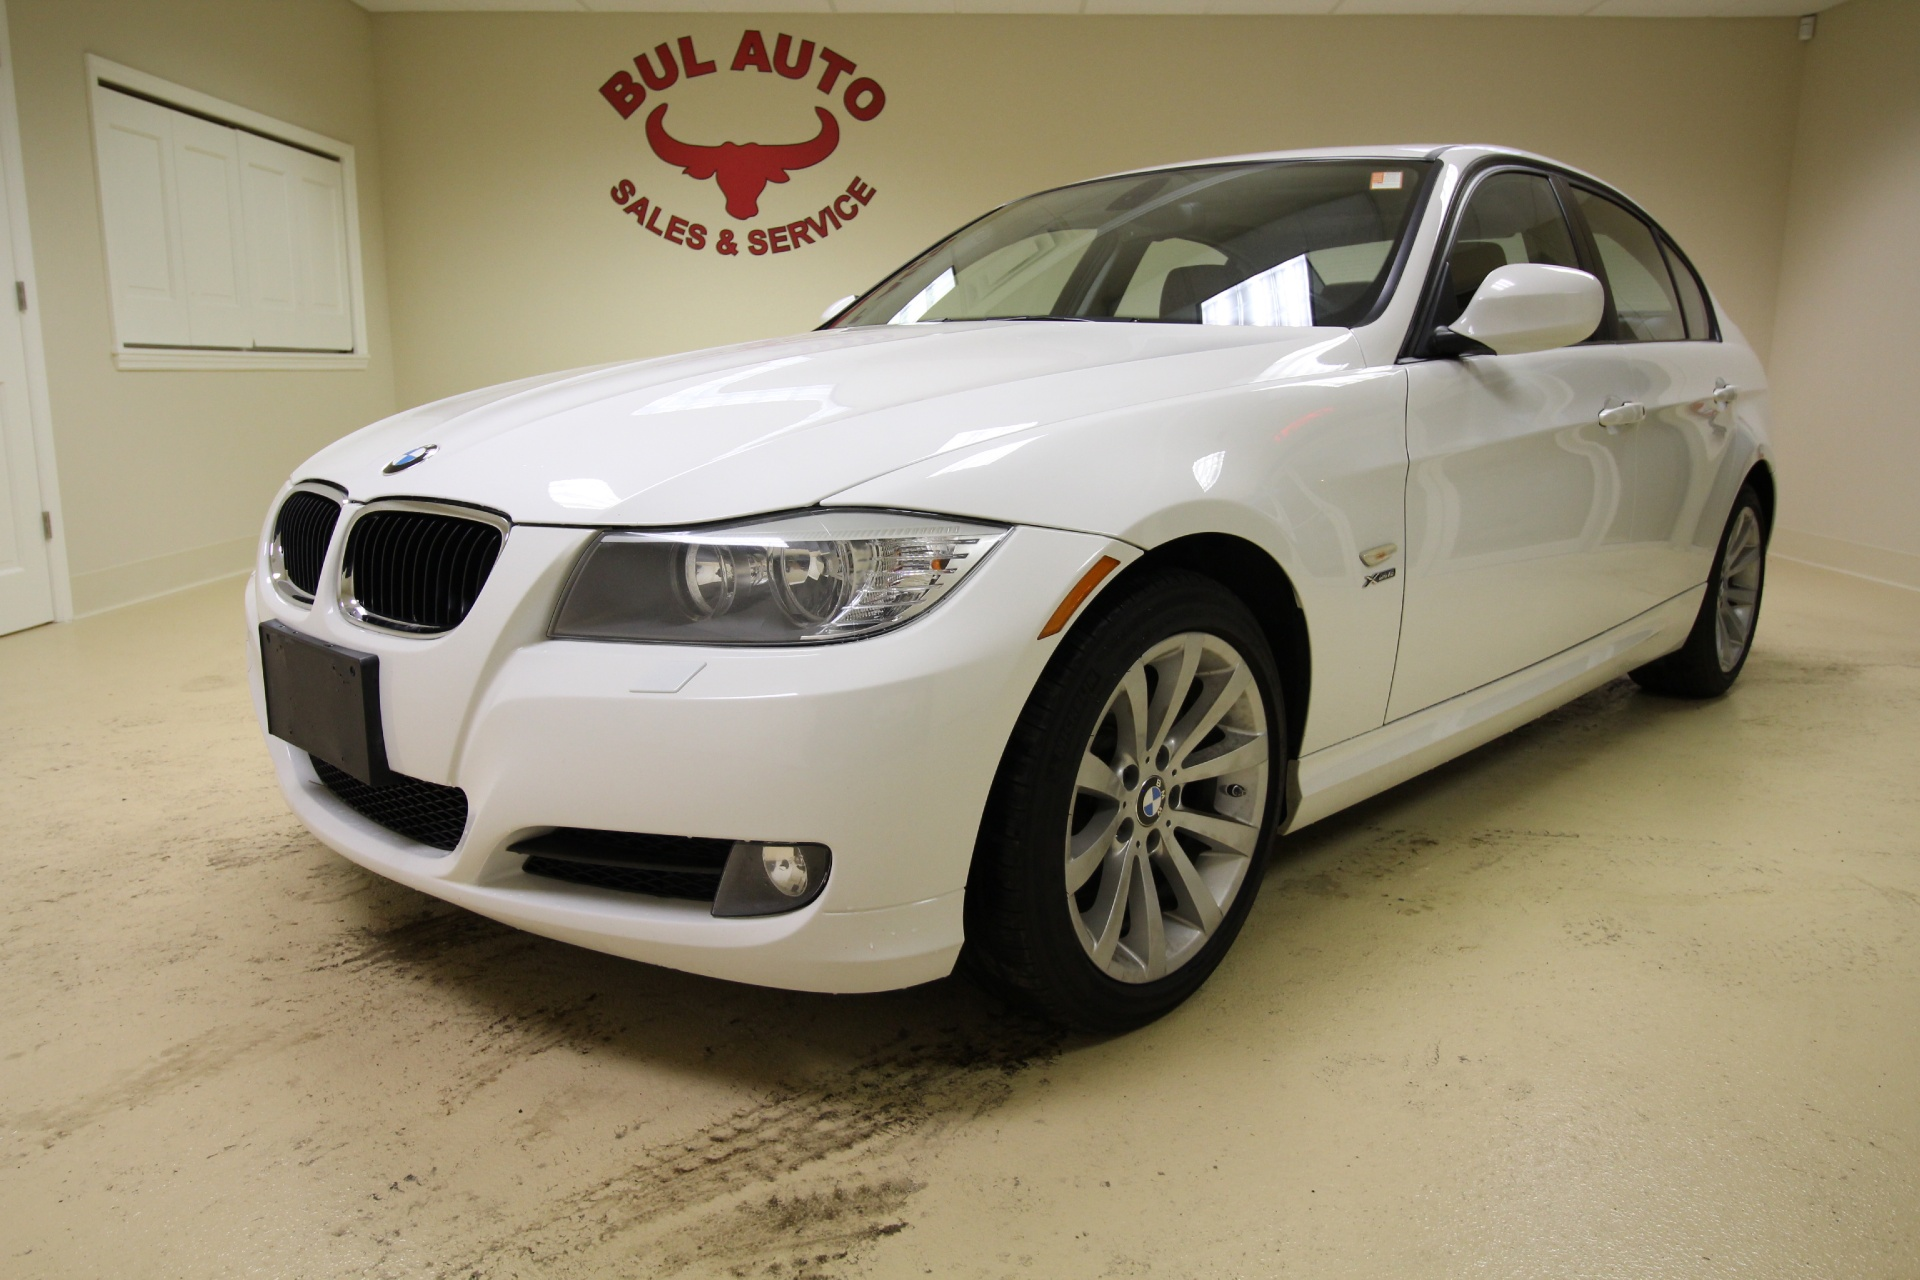 2011 Bmw 3 Series 328i Xdrive Awd Permium Value Packages Heated Steering Wheel Stock   16025 For